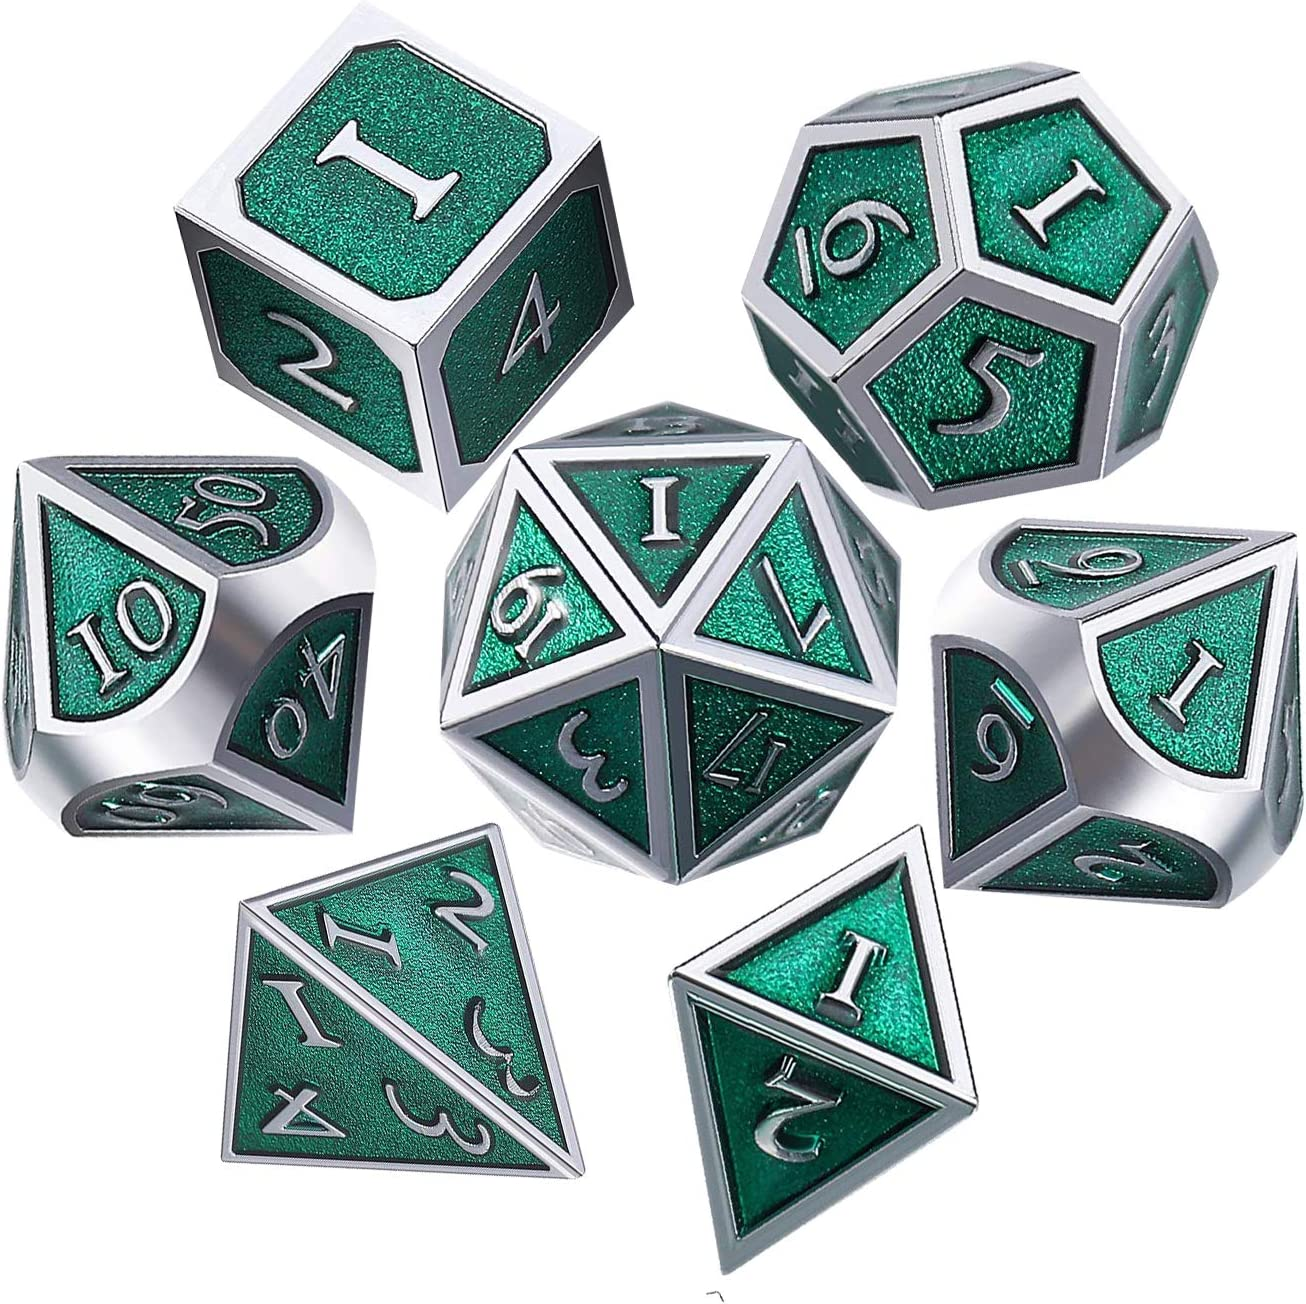 UONUOT 7pcs DND Metal Dice Reservation New Free Shipping Set Polyhedral Black Pouches with DD